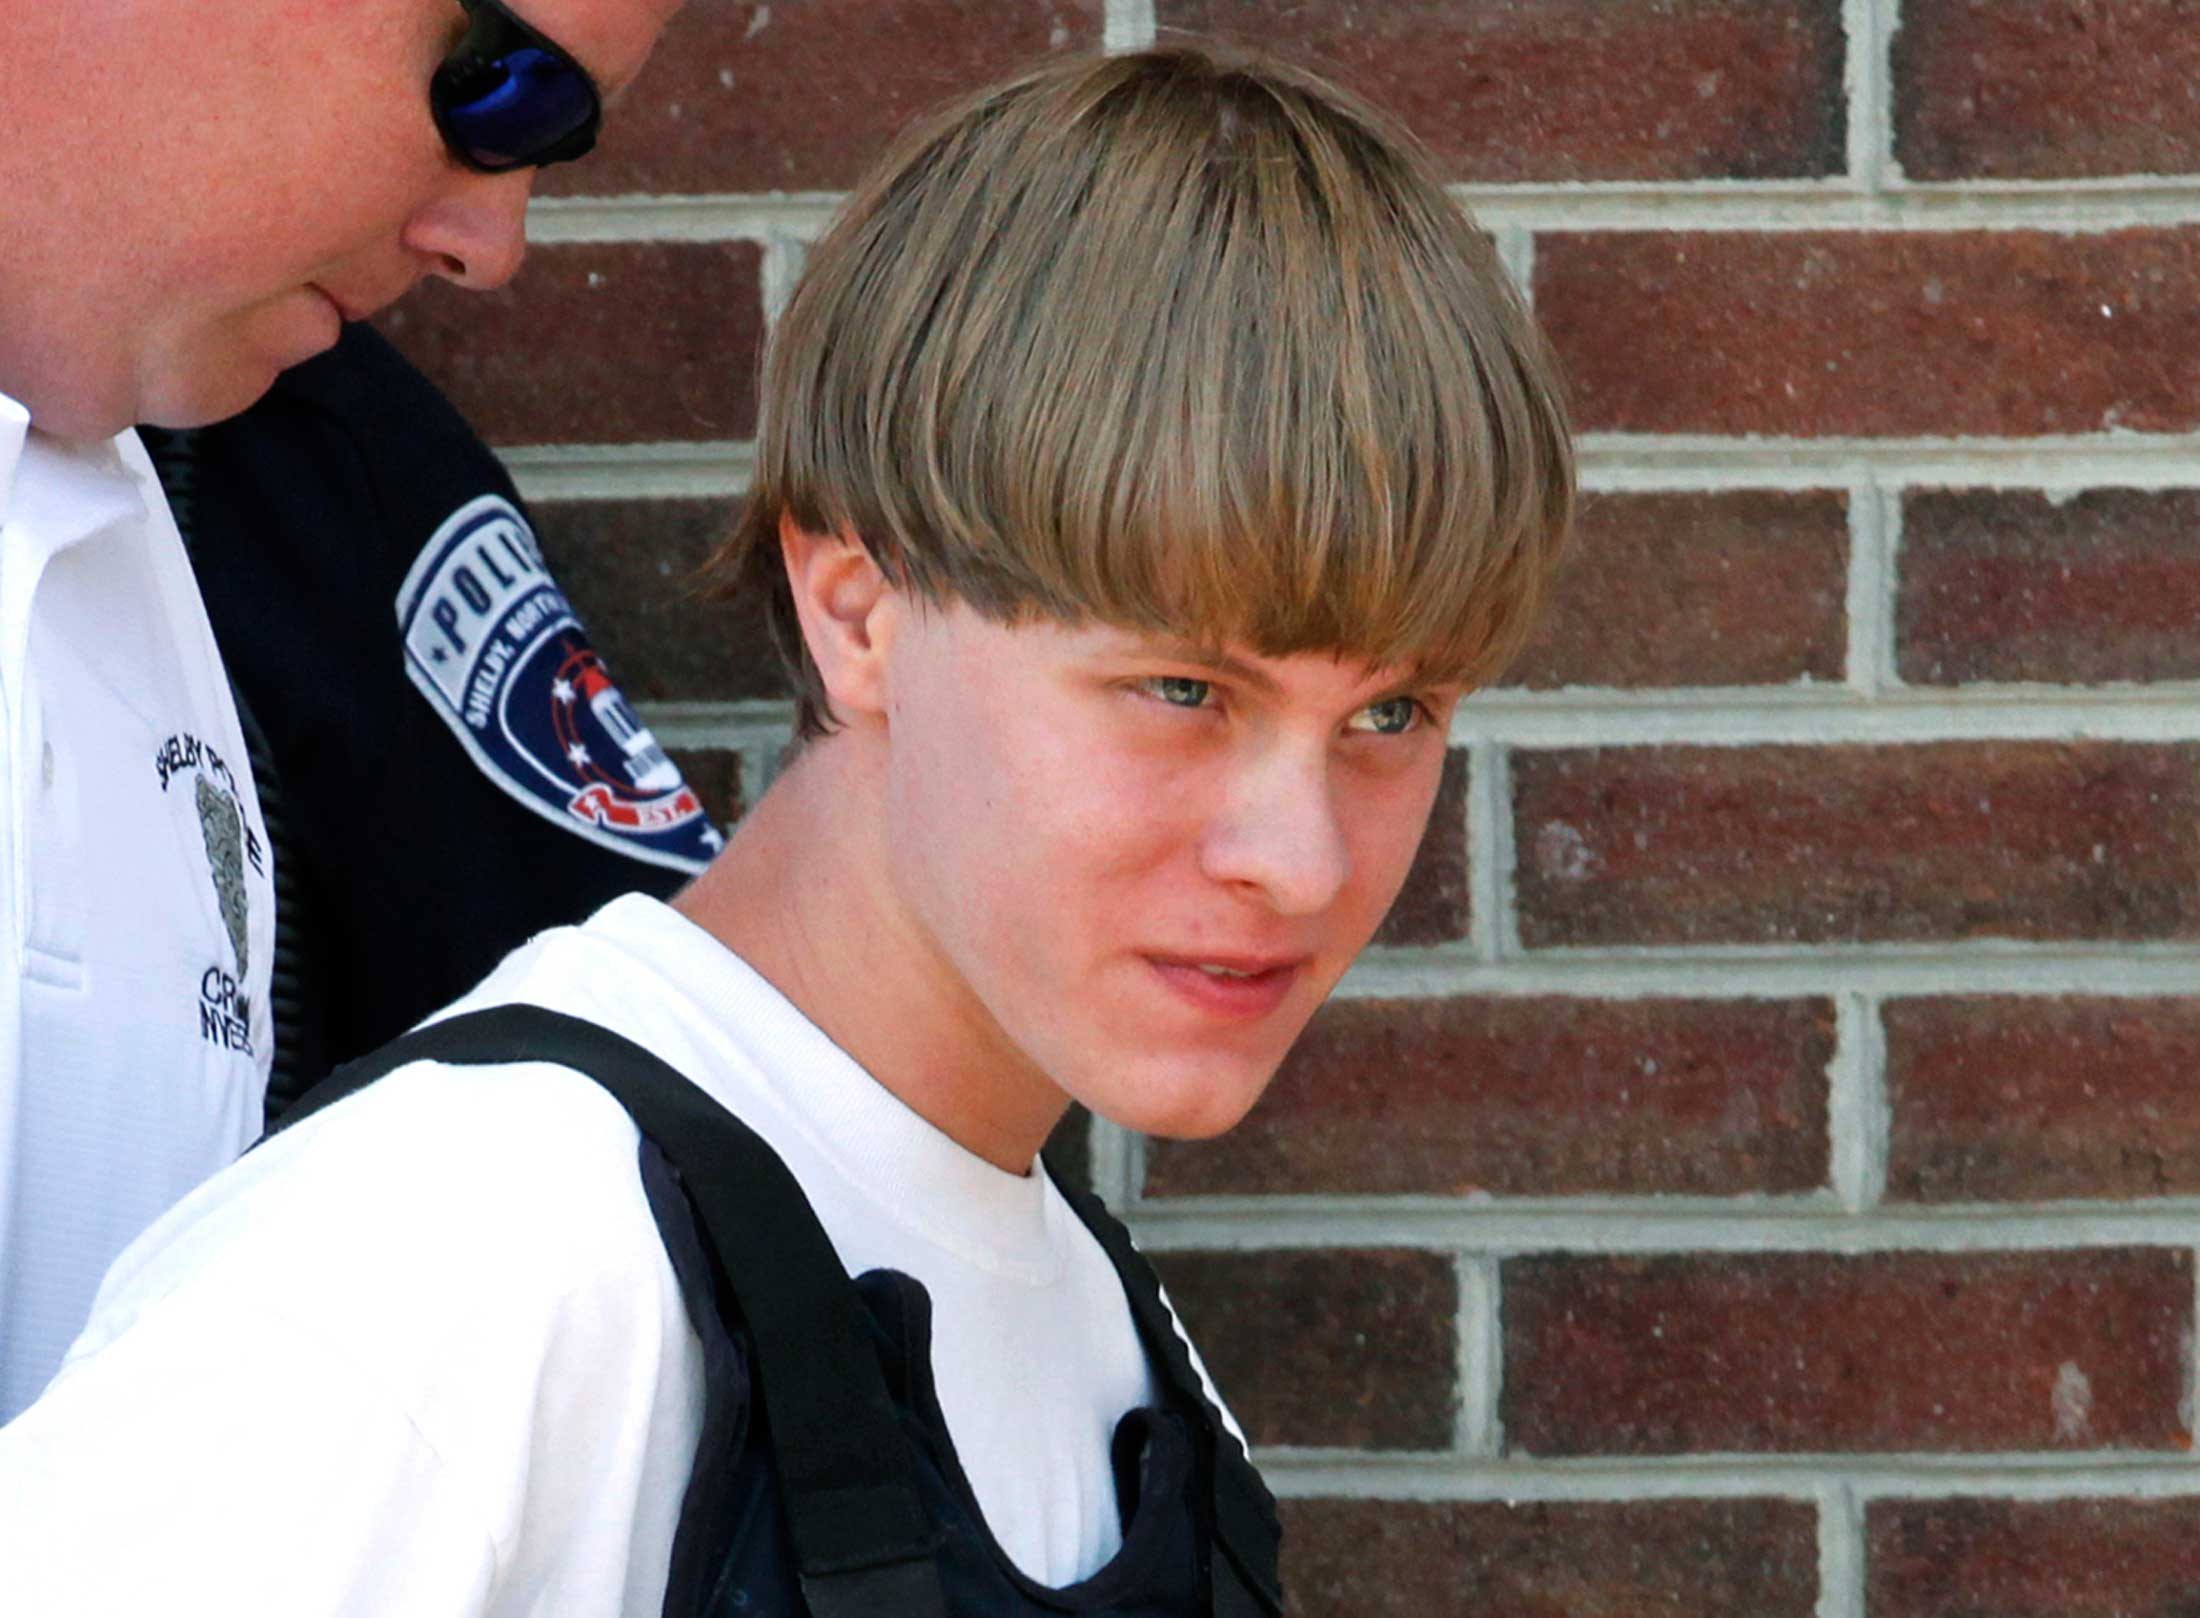 Police lead suspected shooter Dylann Roof into the courthouse in Shelby, North Carolina, June 18, 2015.